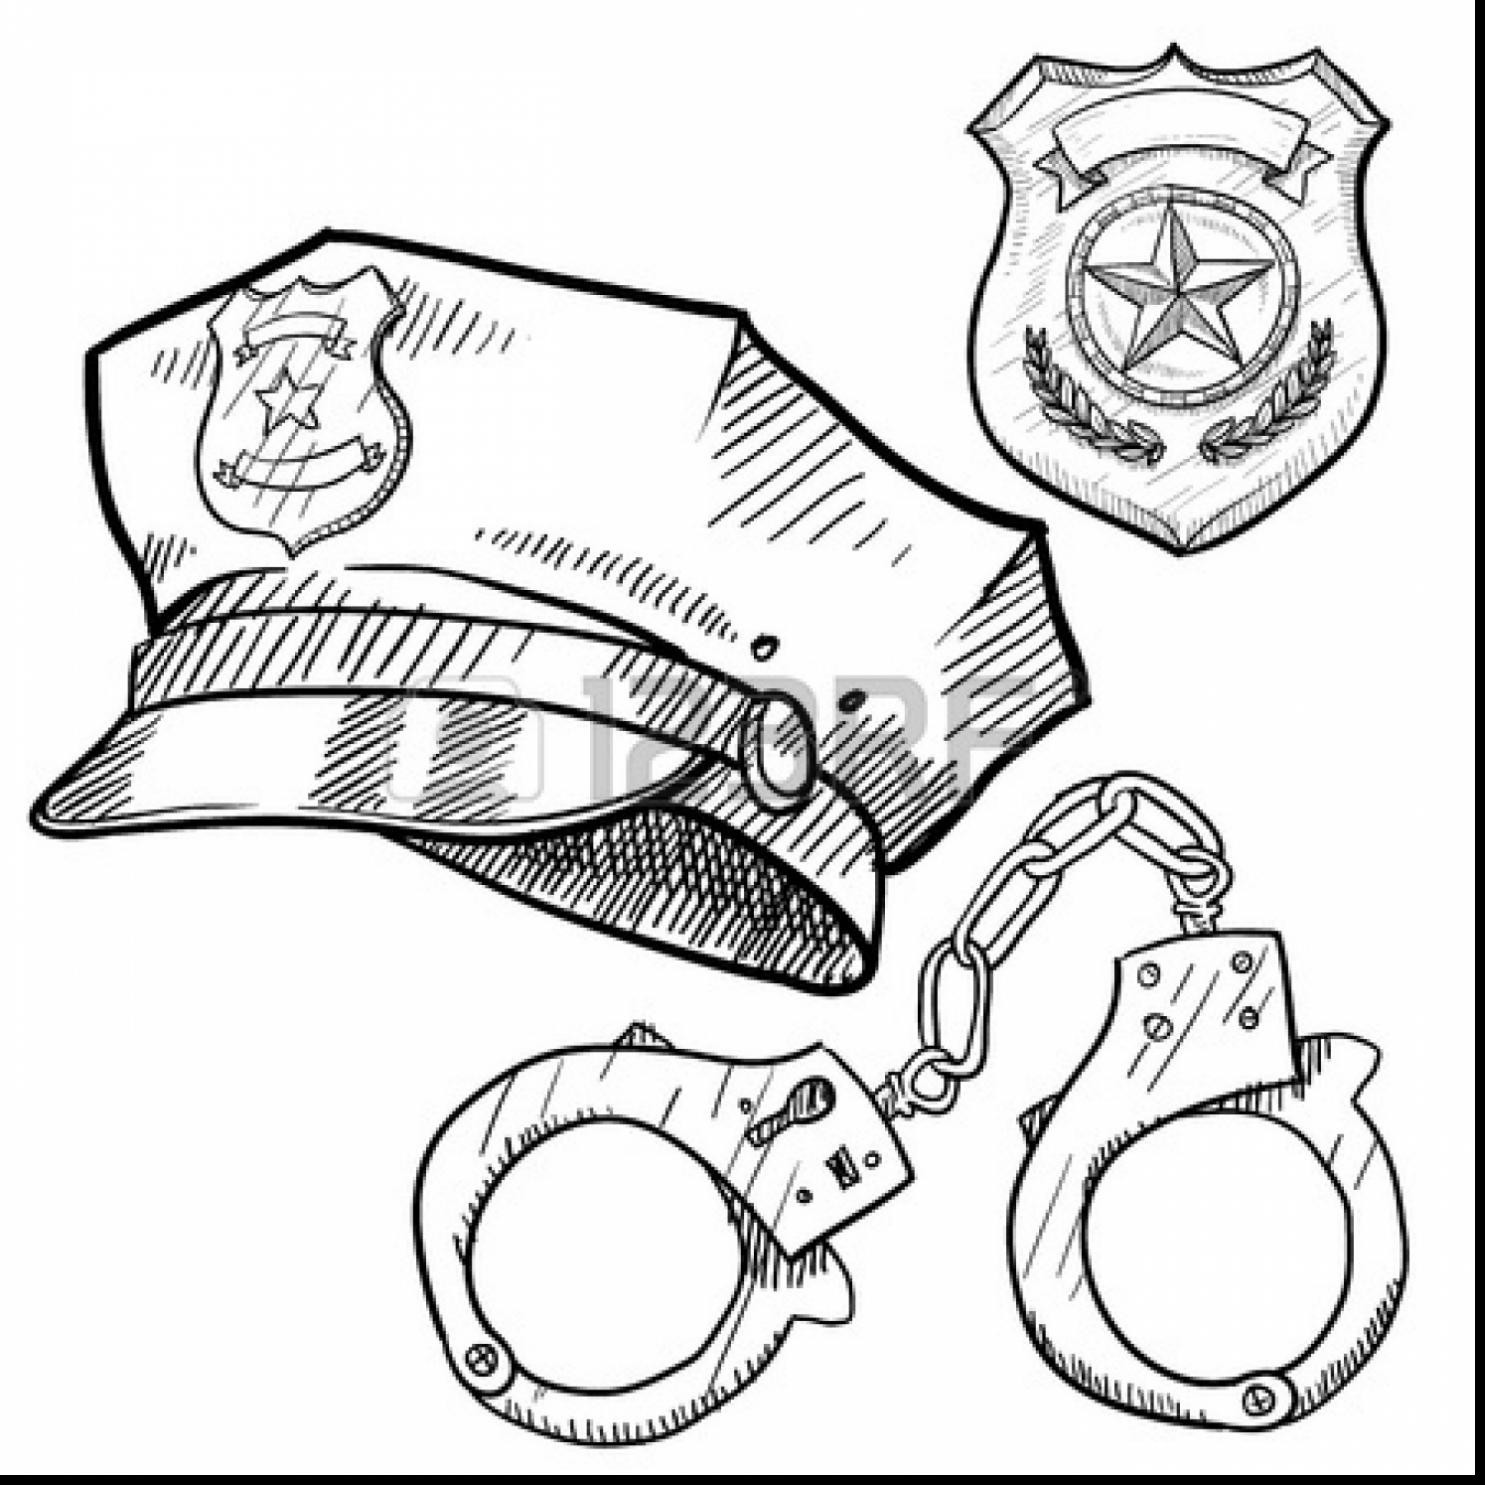 1485x1485 Charming Policeman Coloring Page Coloring In Good Huge Gift